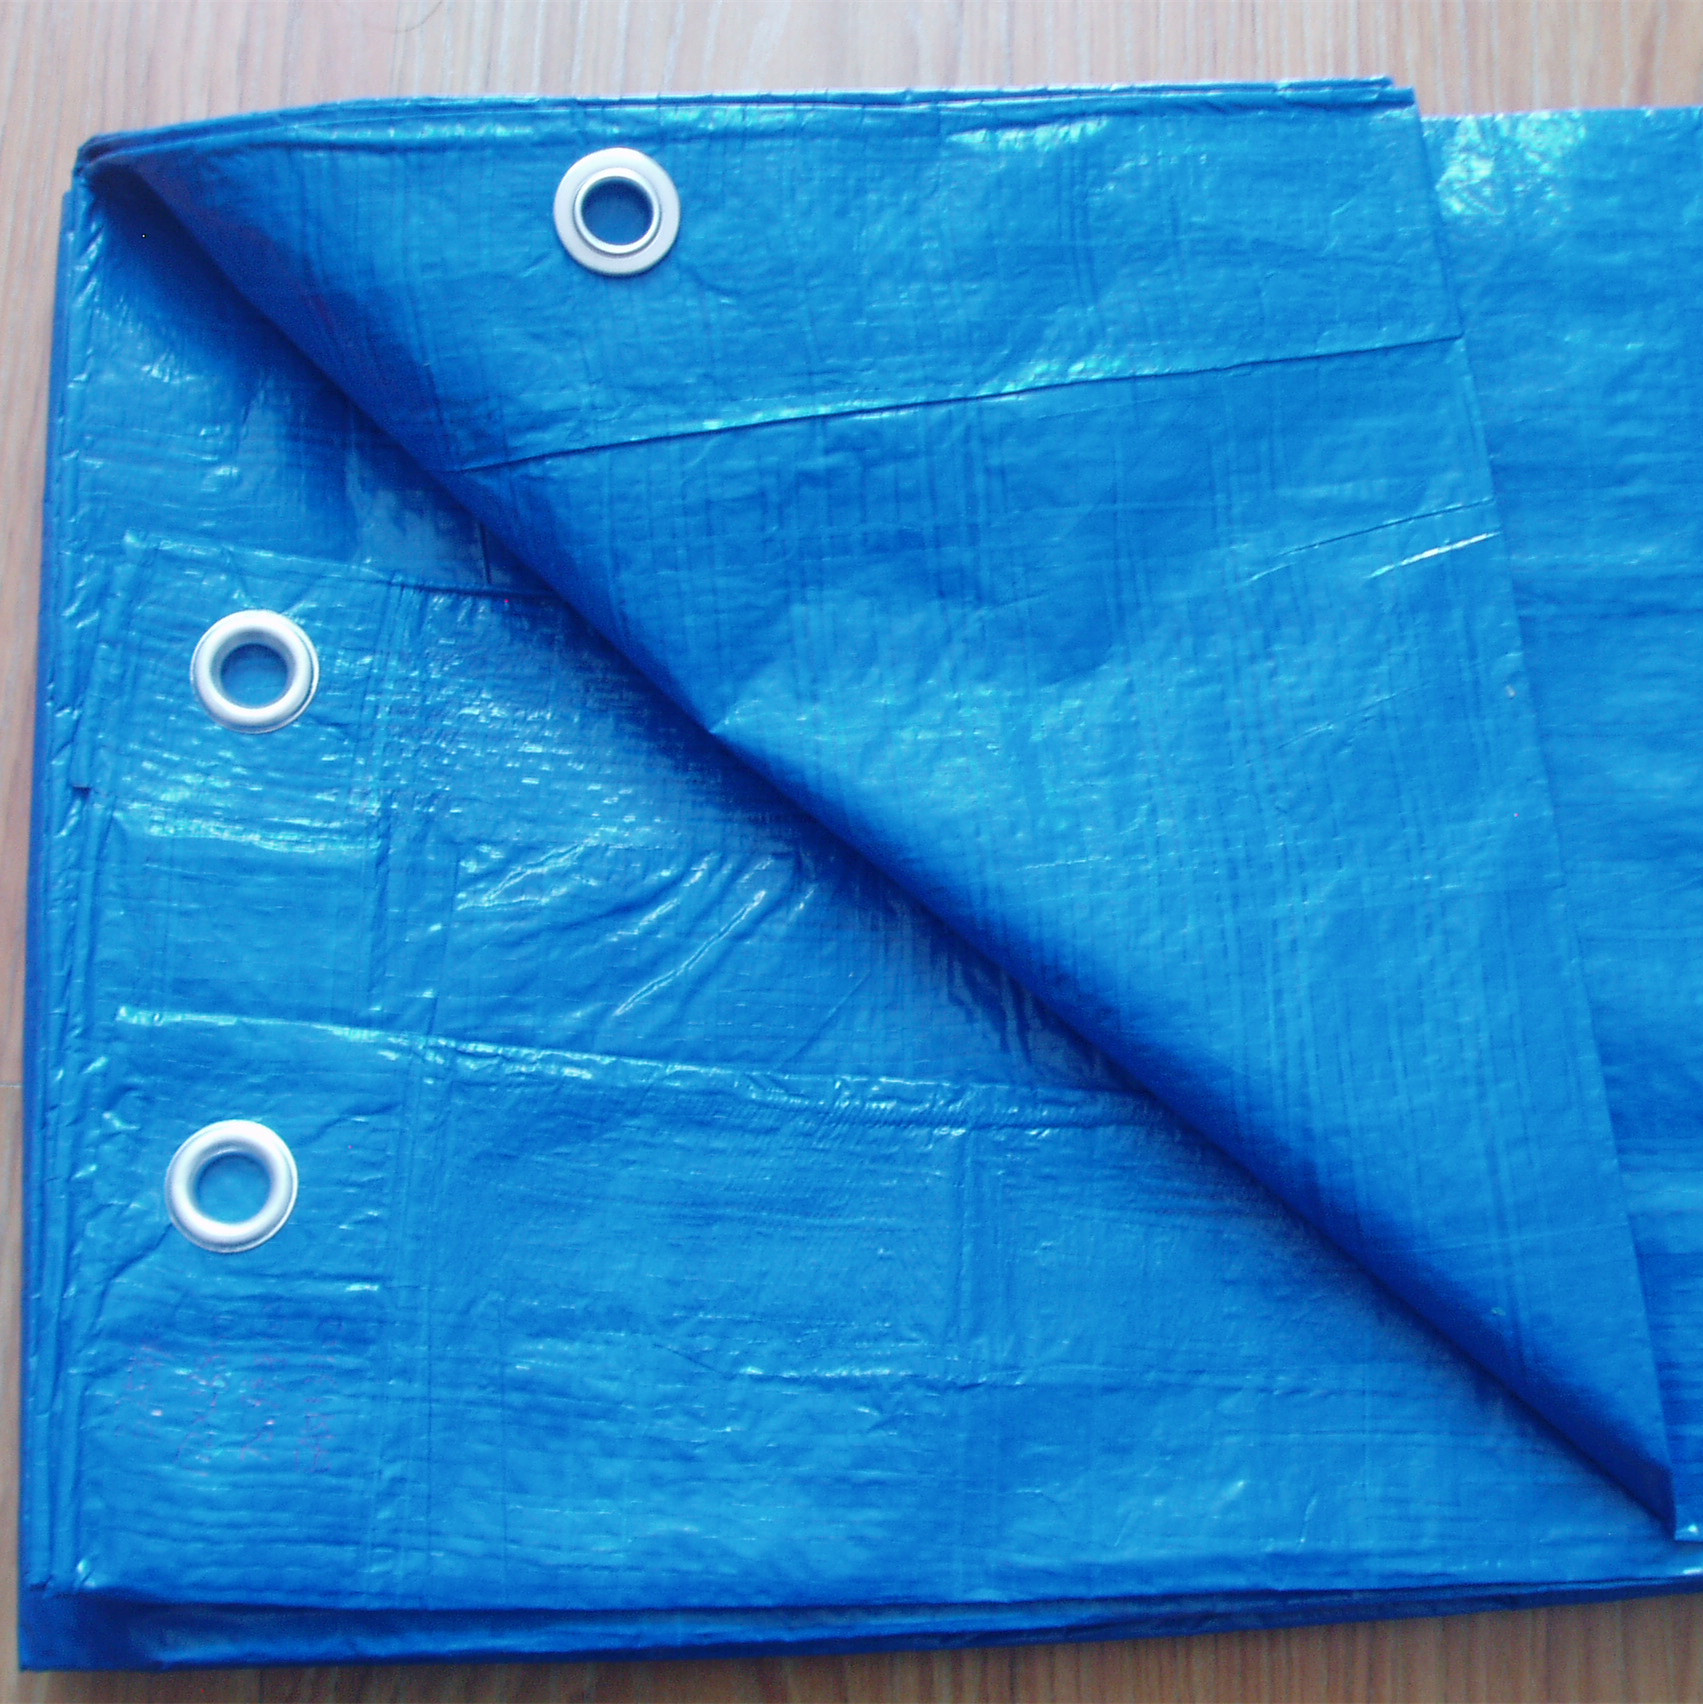 Blue PE tarpaulin sheet